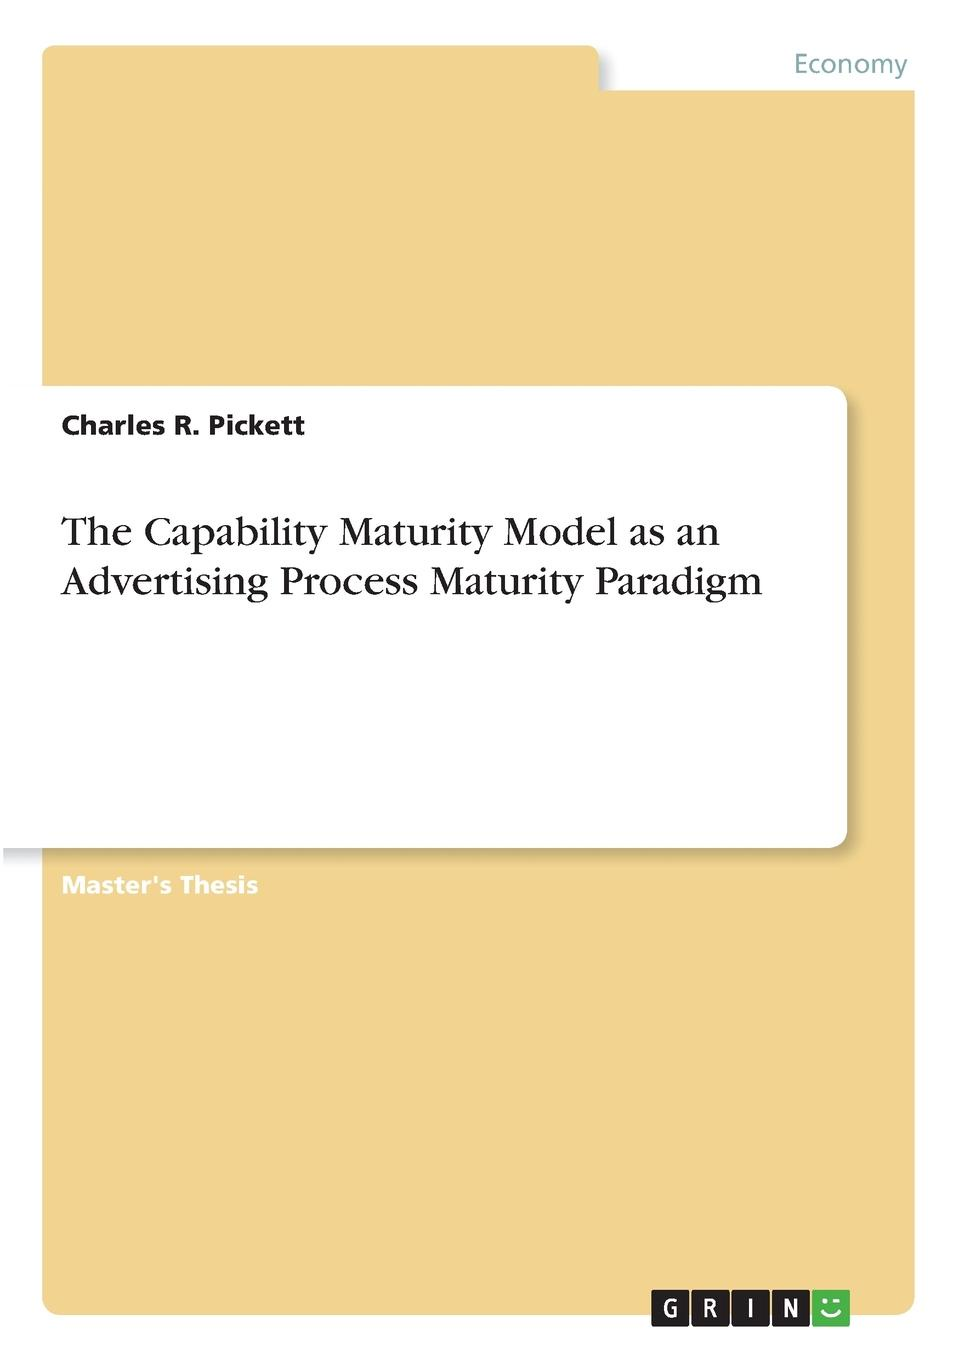 Charles R. Pickett The Capability Maturity Model as an Advertising Process Maturity Paradigm business logistics management